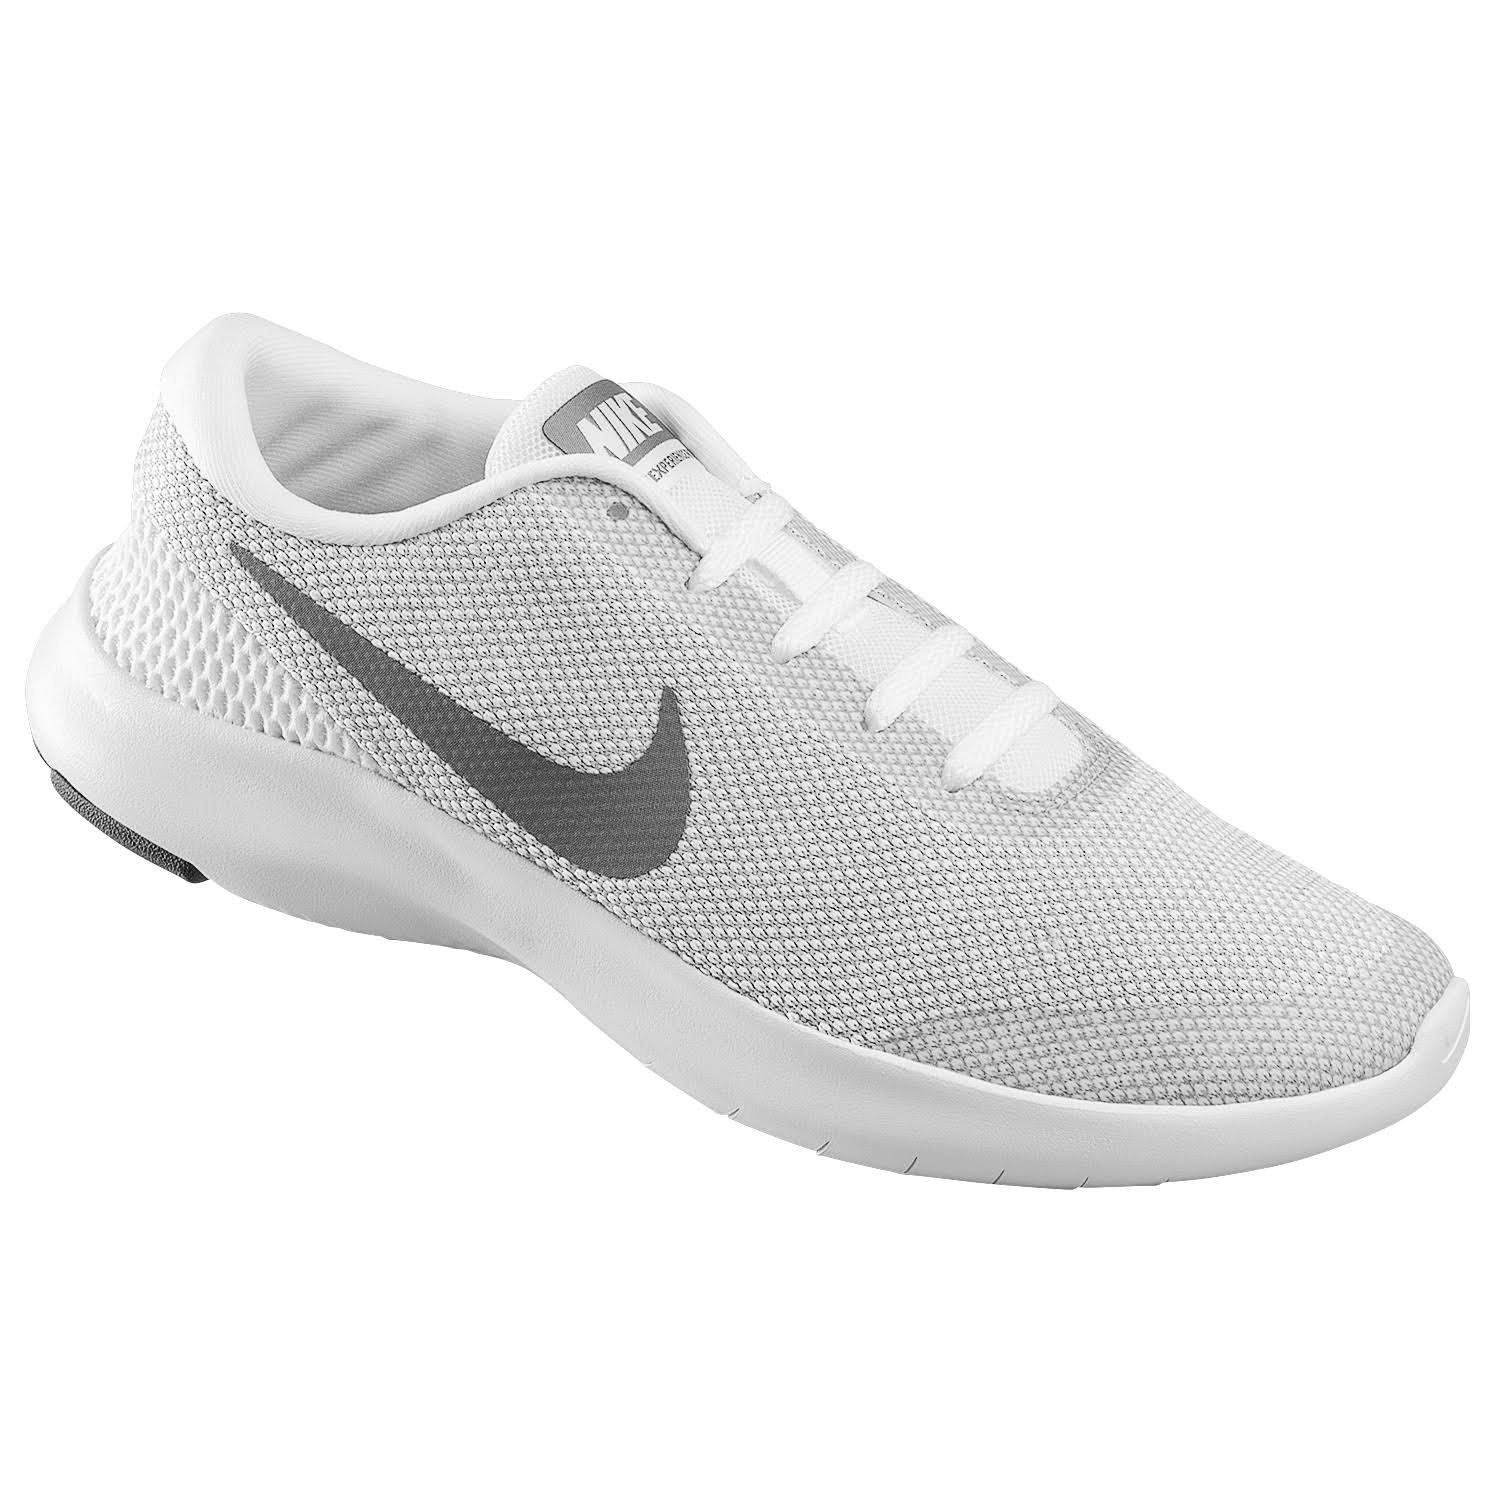 cool wolf Grey Flex Shoes Grey Womens White Experience Nike Sneakers Running 7 8ZqTv